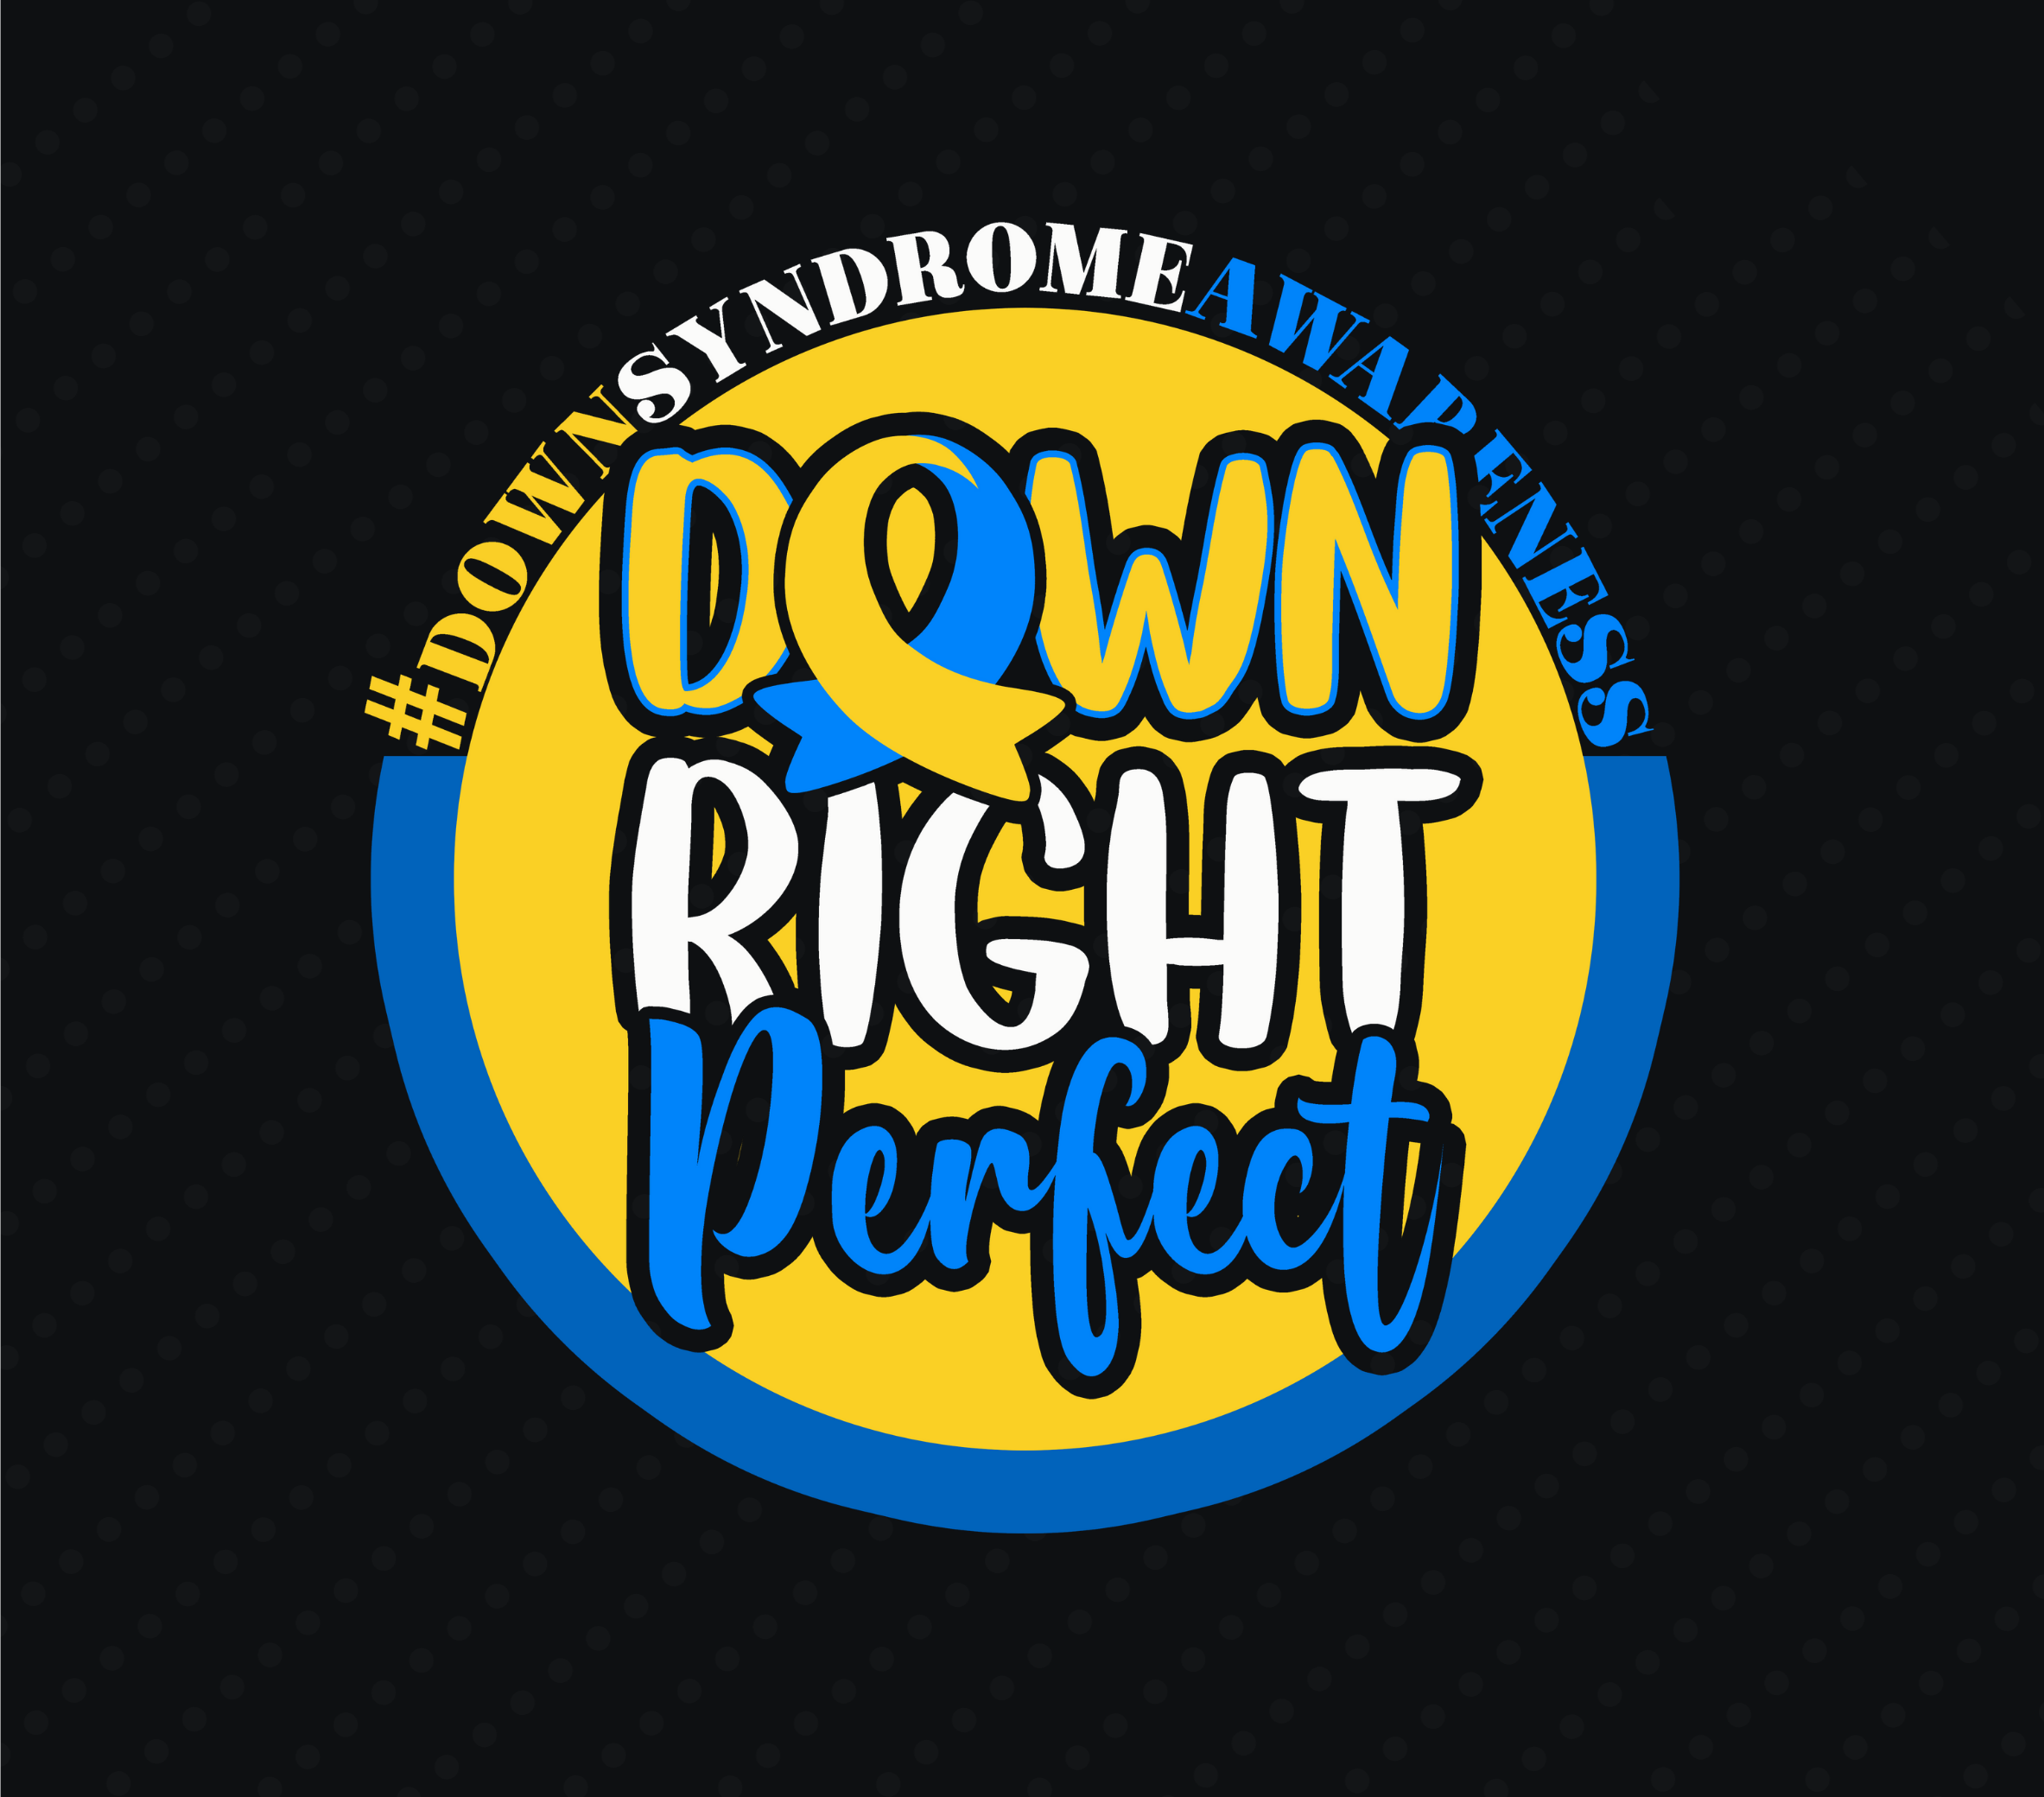 Down Syndrome Awareness Down Right Perfect Png Only Etsy Down Syndrome Awareness Down Syndrome Smart Business